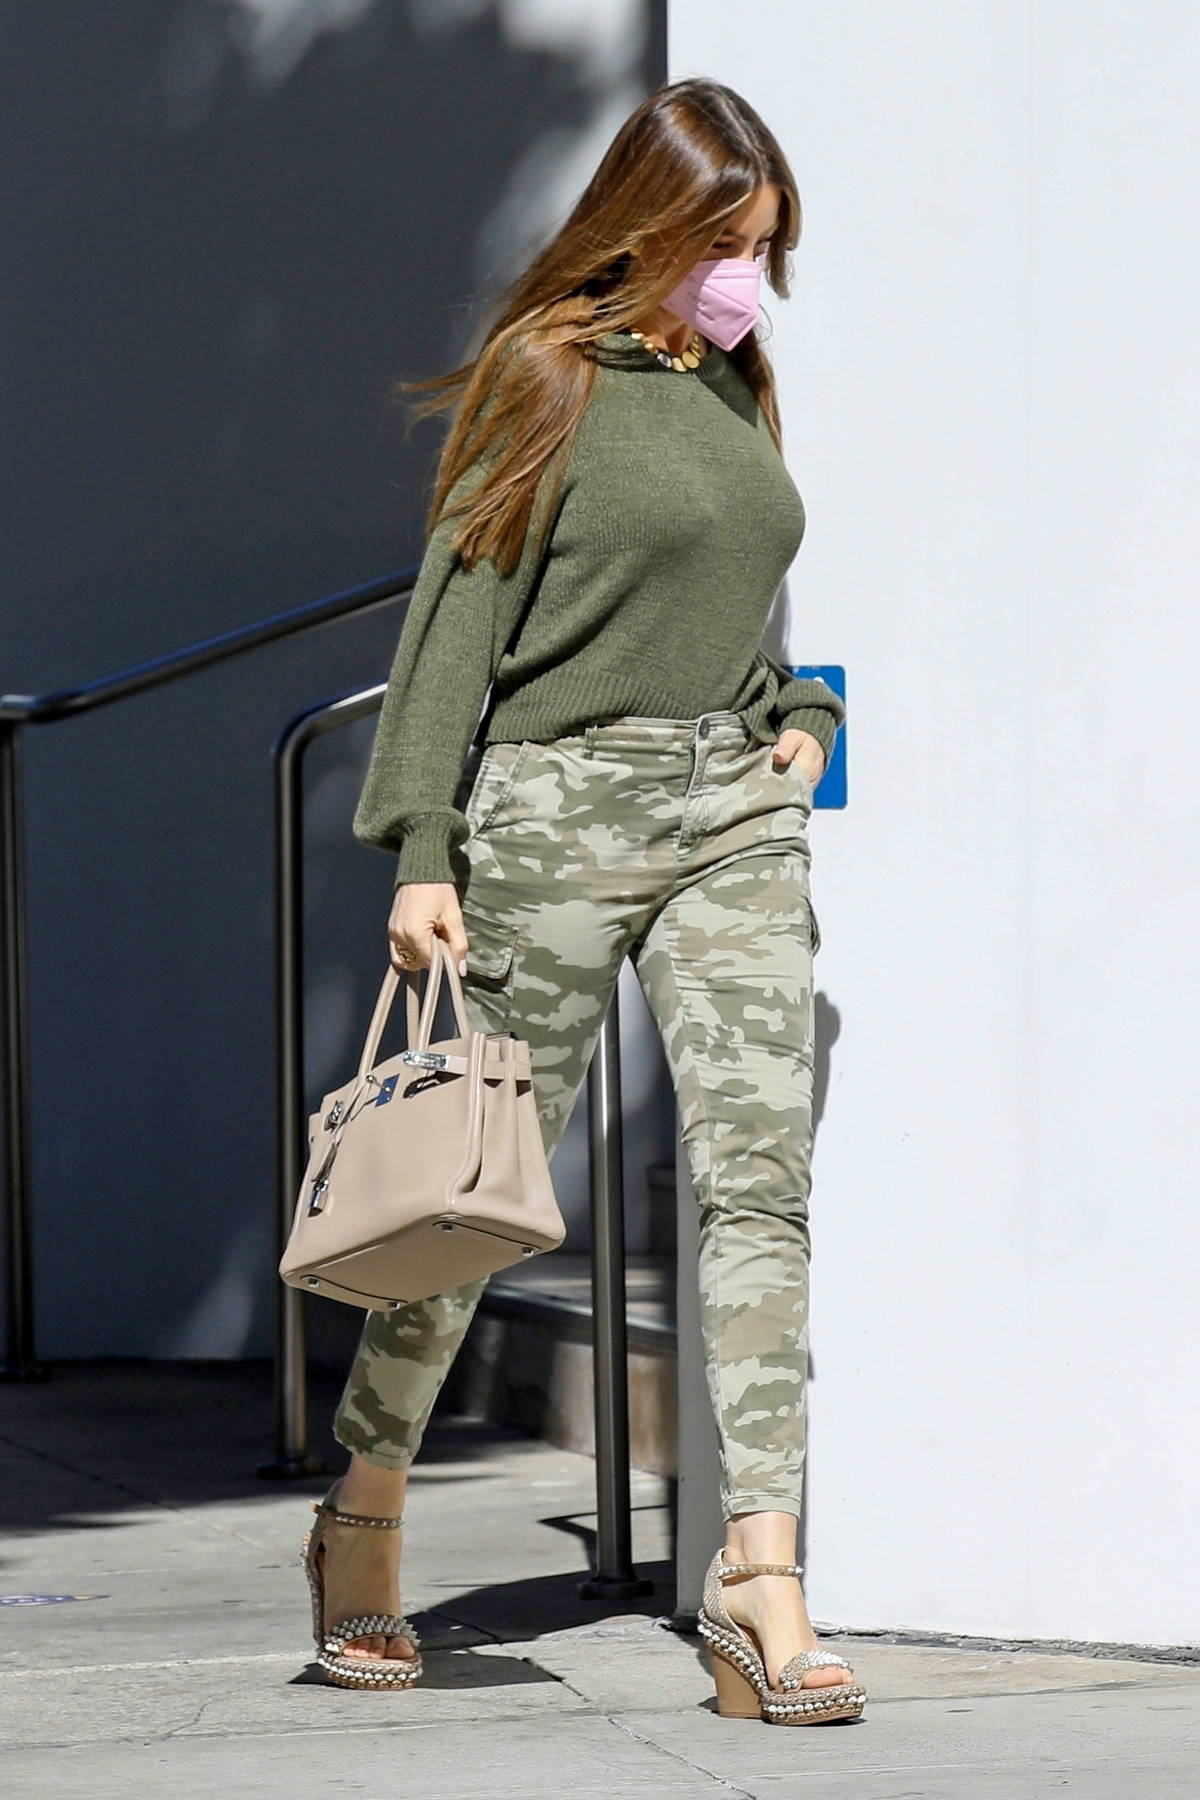 Sofia Vergara wears a green sweater and camo pants while out running errands in Beverly Hills, California